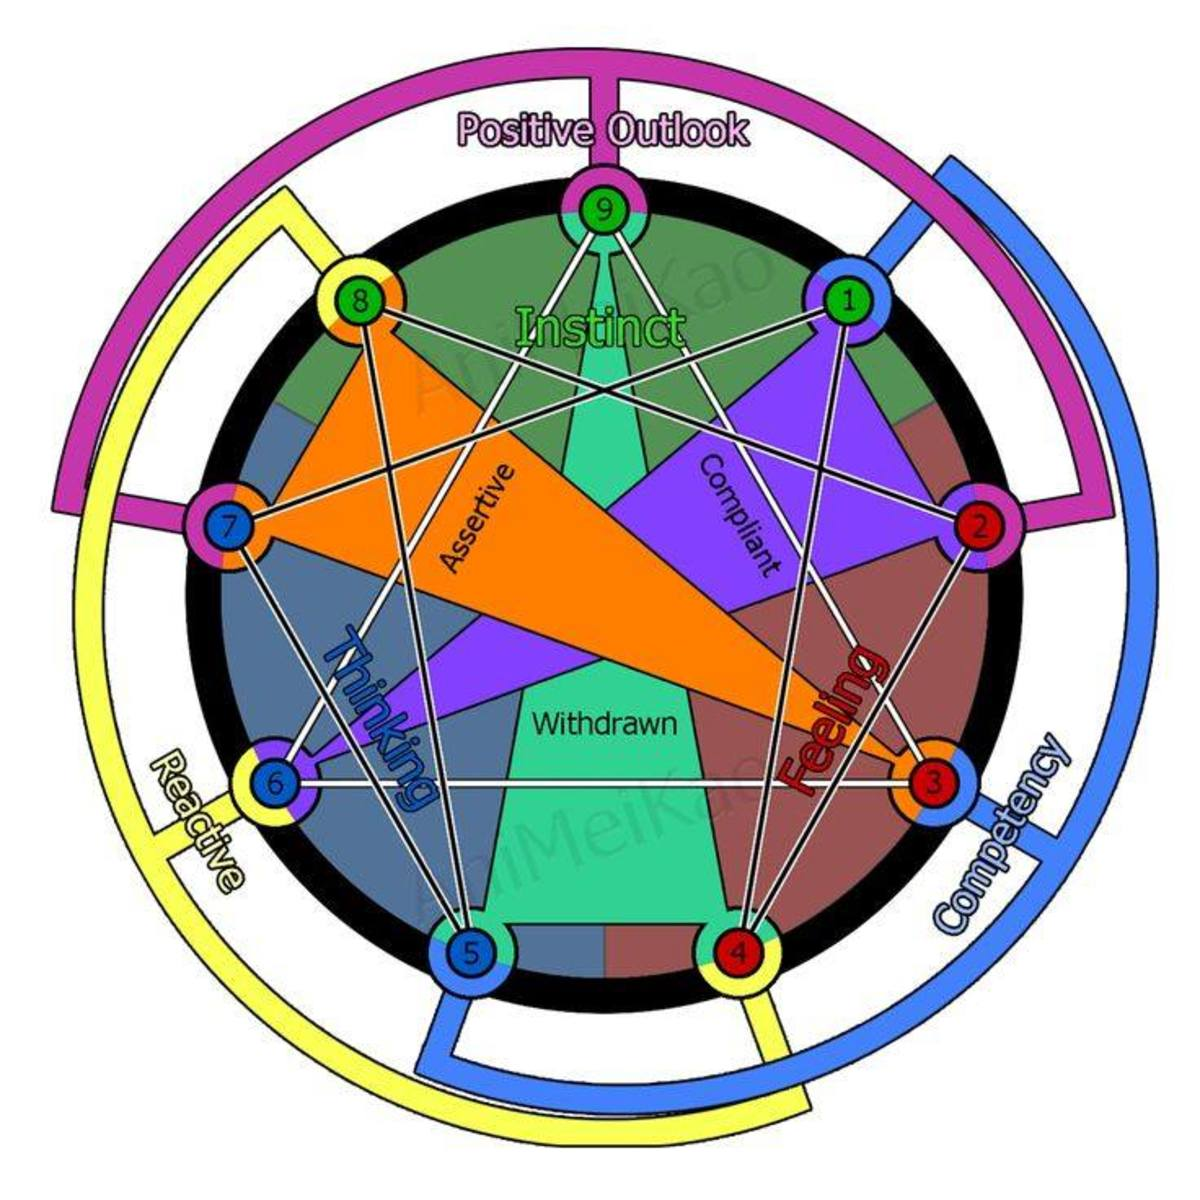 The Quad-Cube or Lo Shu Matrix for each Enneagram Type shows the Four Core Relationships.